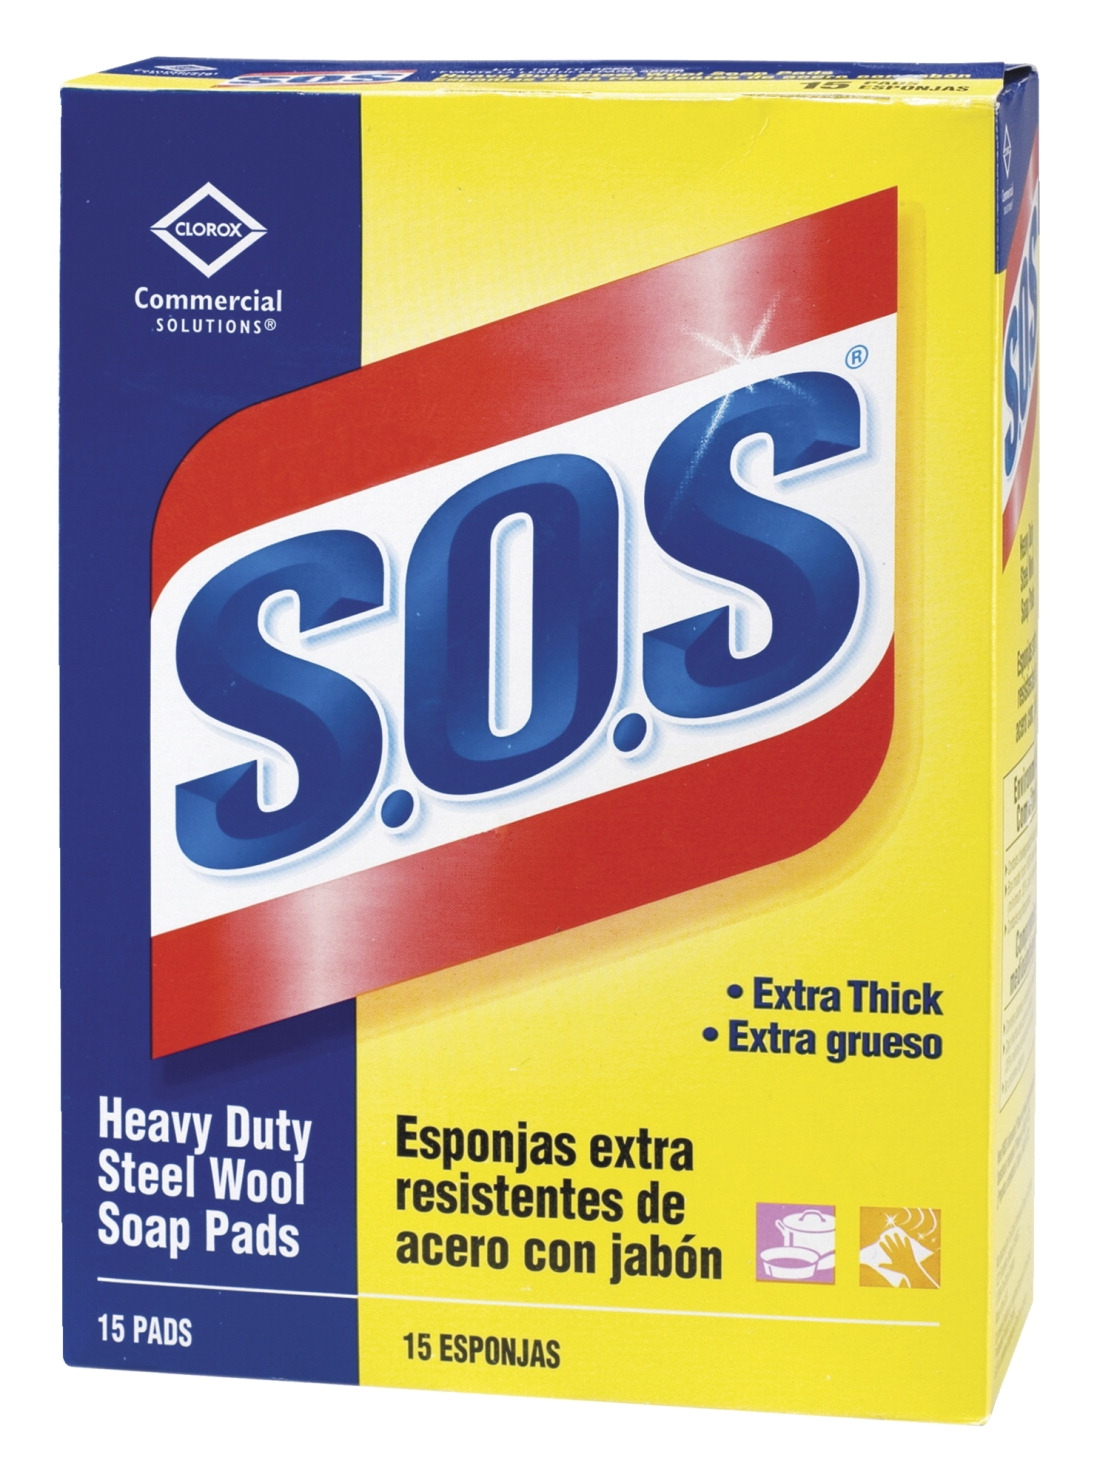 Clorox S.o.s. Steel Wool Soap Pads; Heavy-duty; 5 X 4 In; Pack Of 12 - 1541698 - Facilities Management Facility Supplies First Aid Health Supplies Hand Soaps Sanitizers 1541698